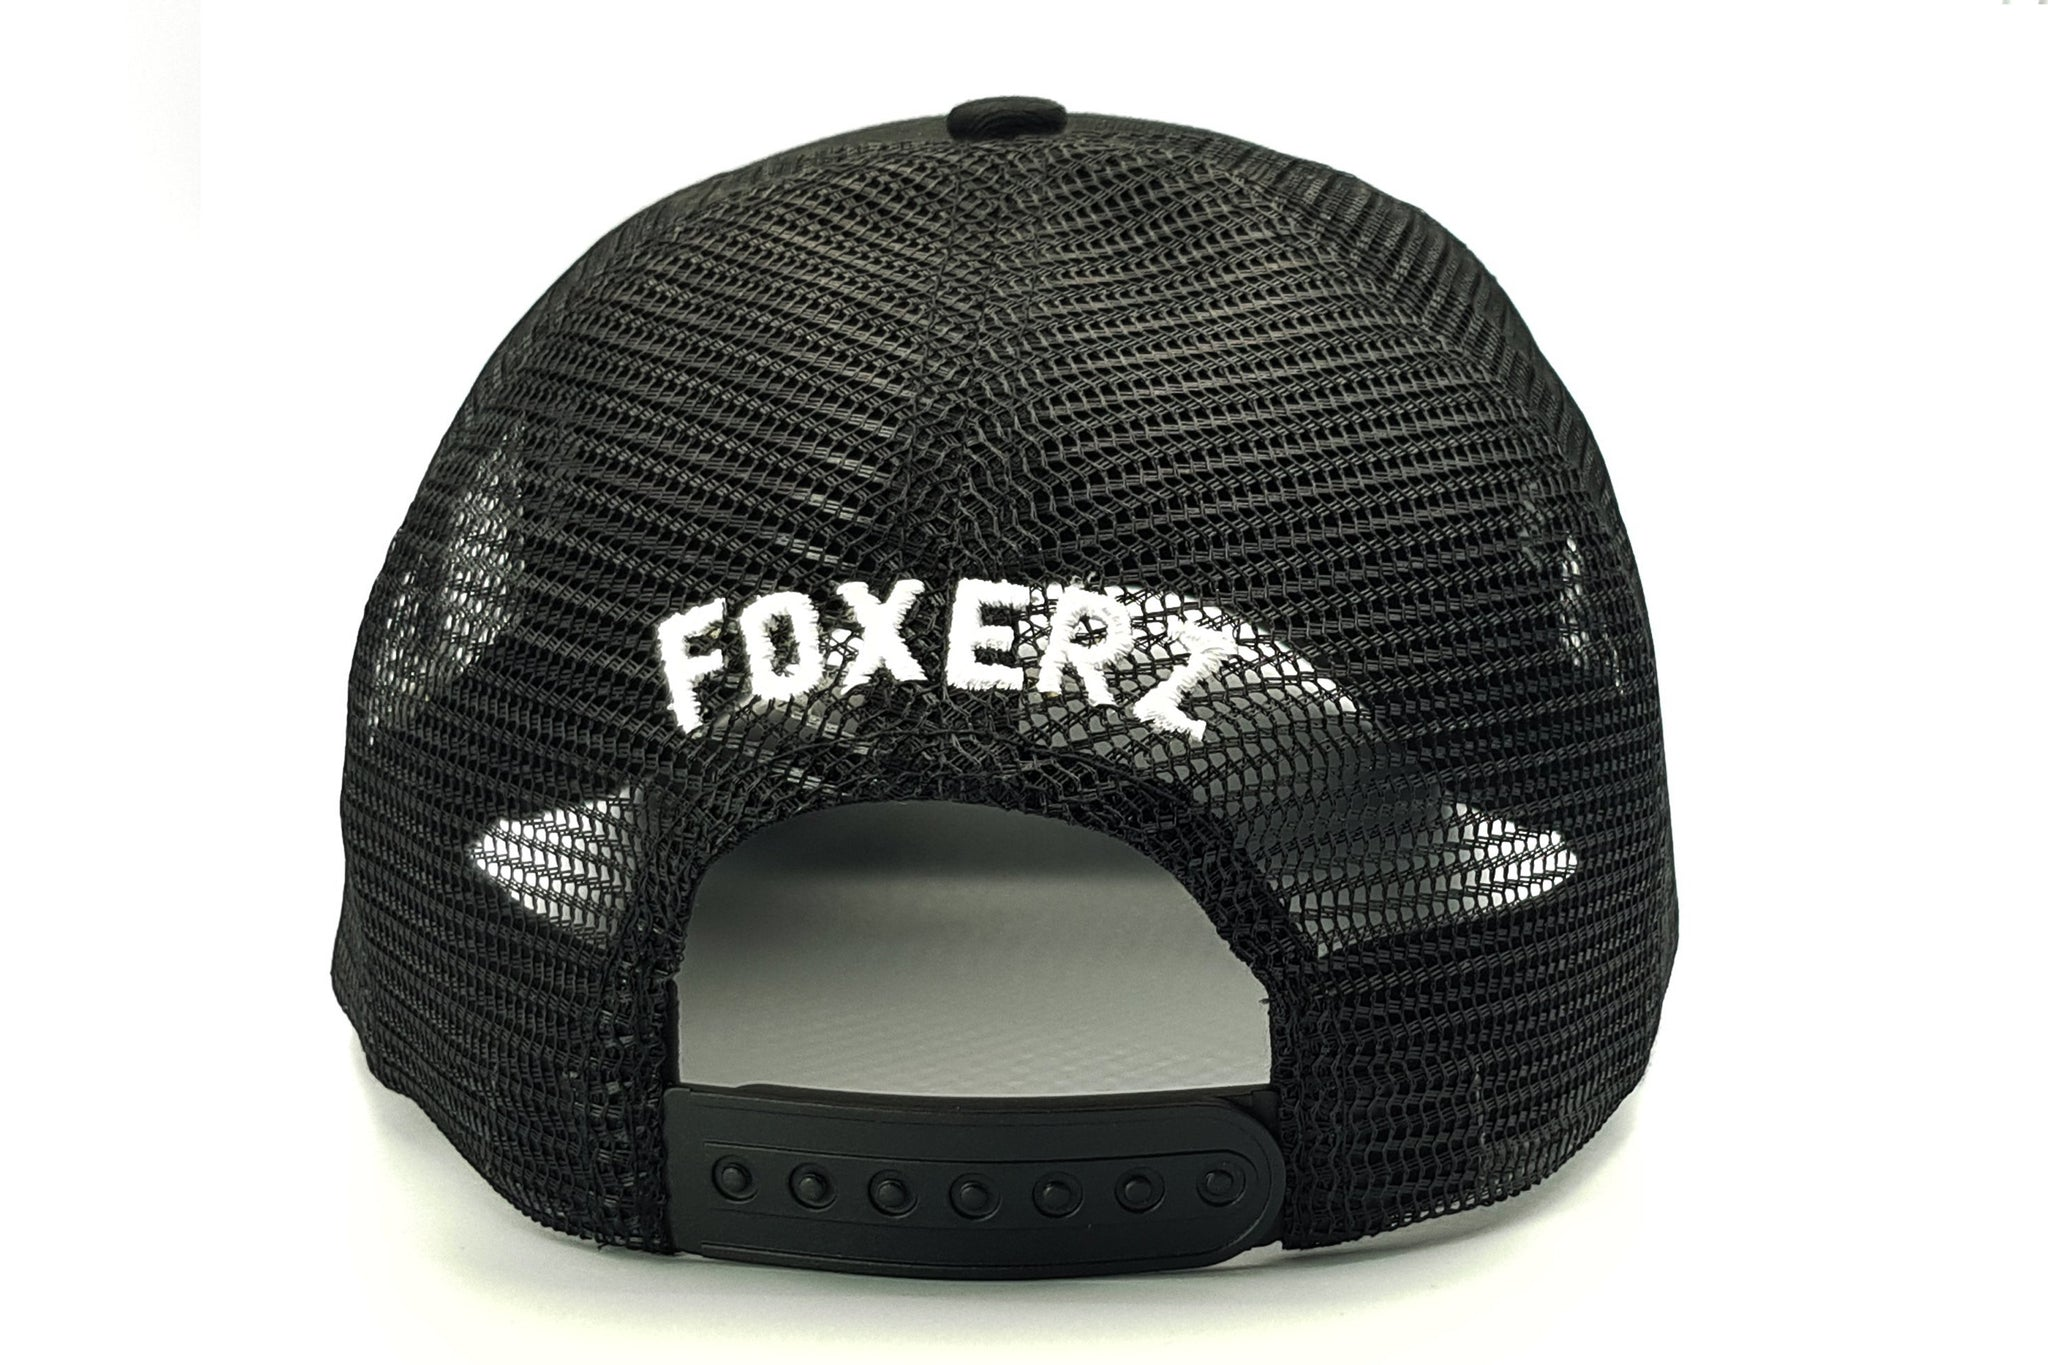 Foxerz logo black cap rearward view